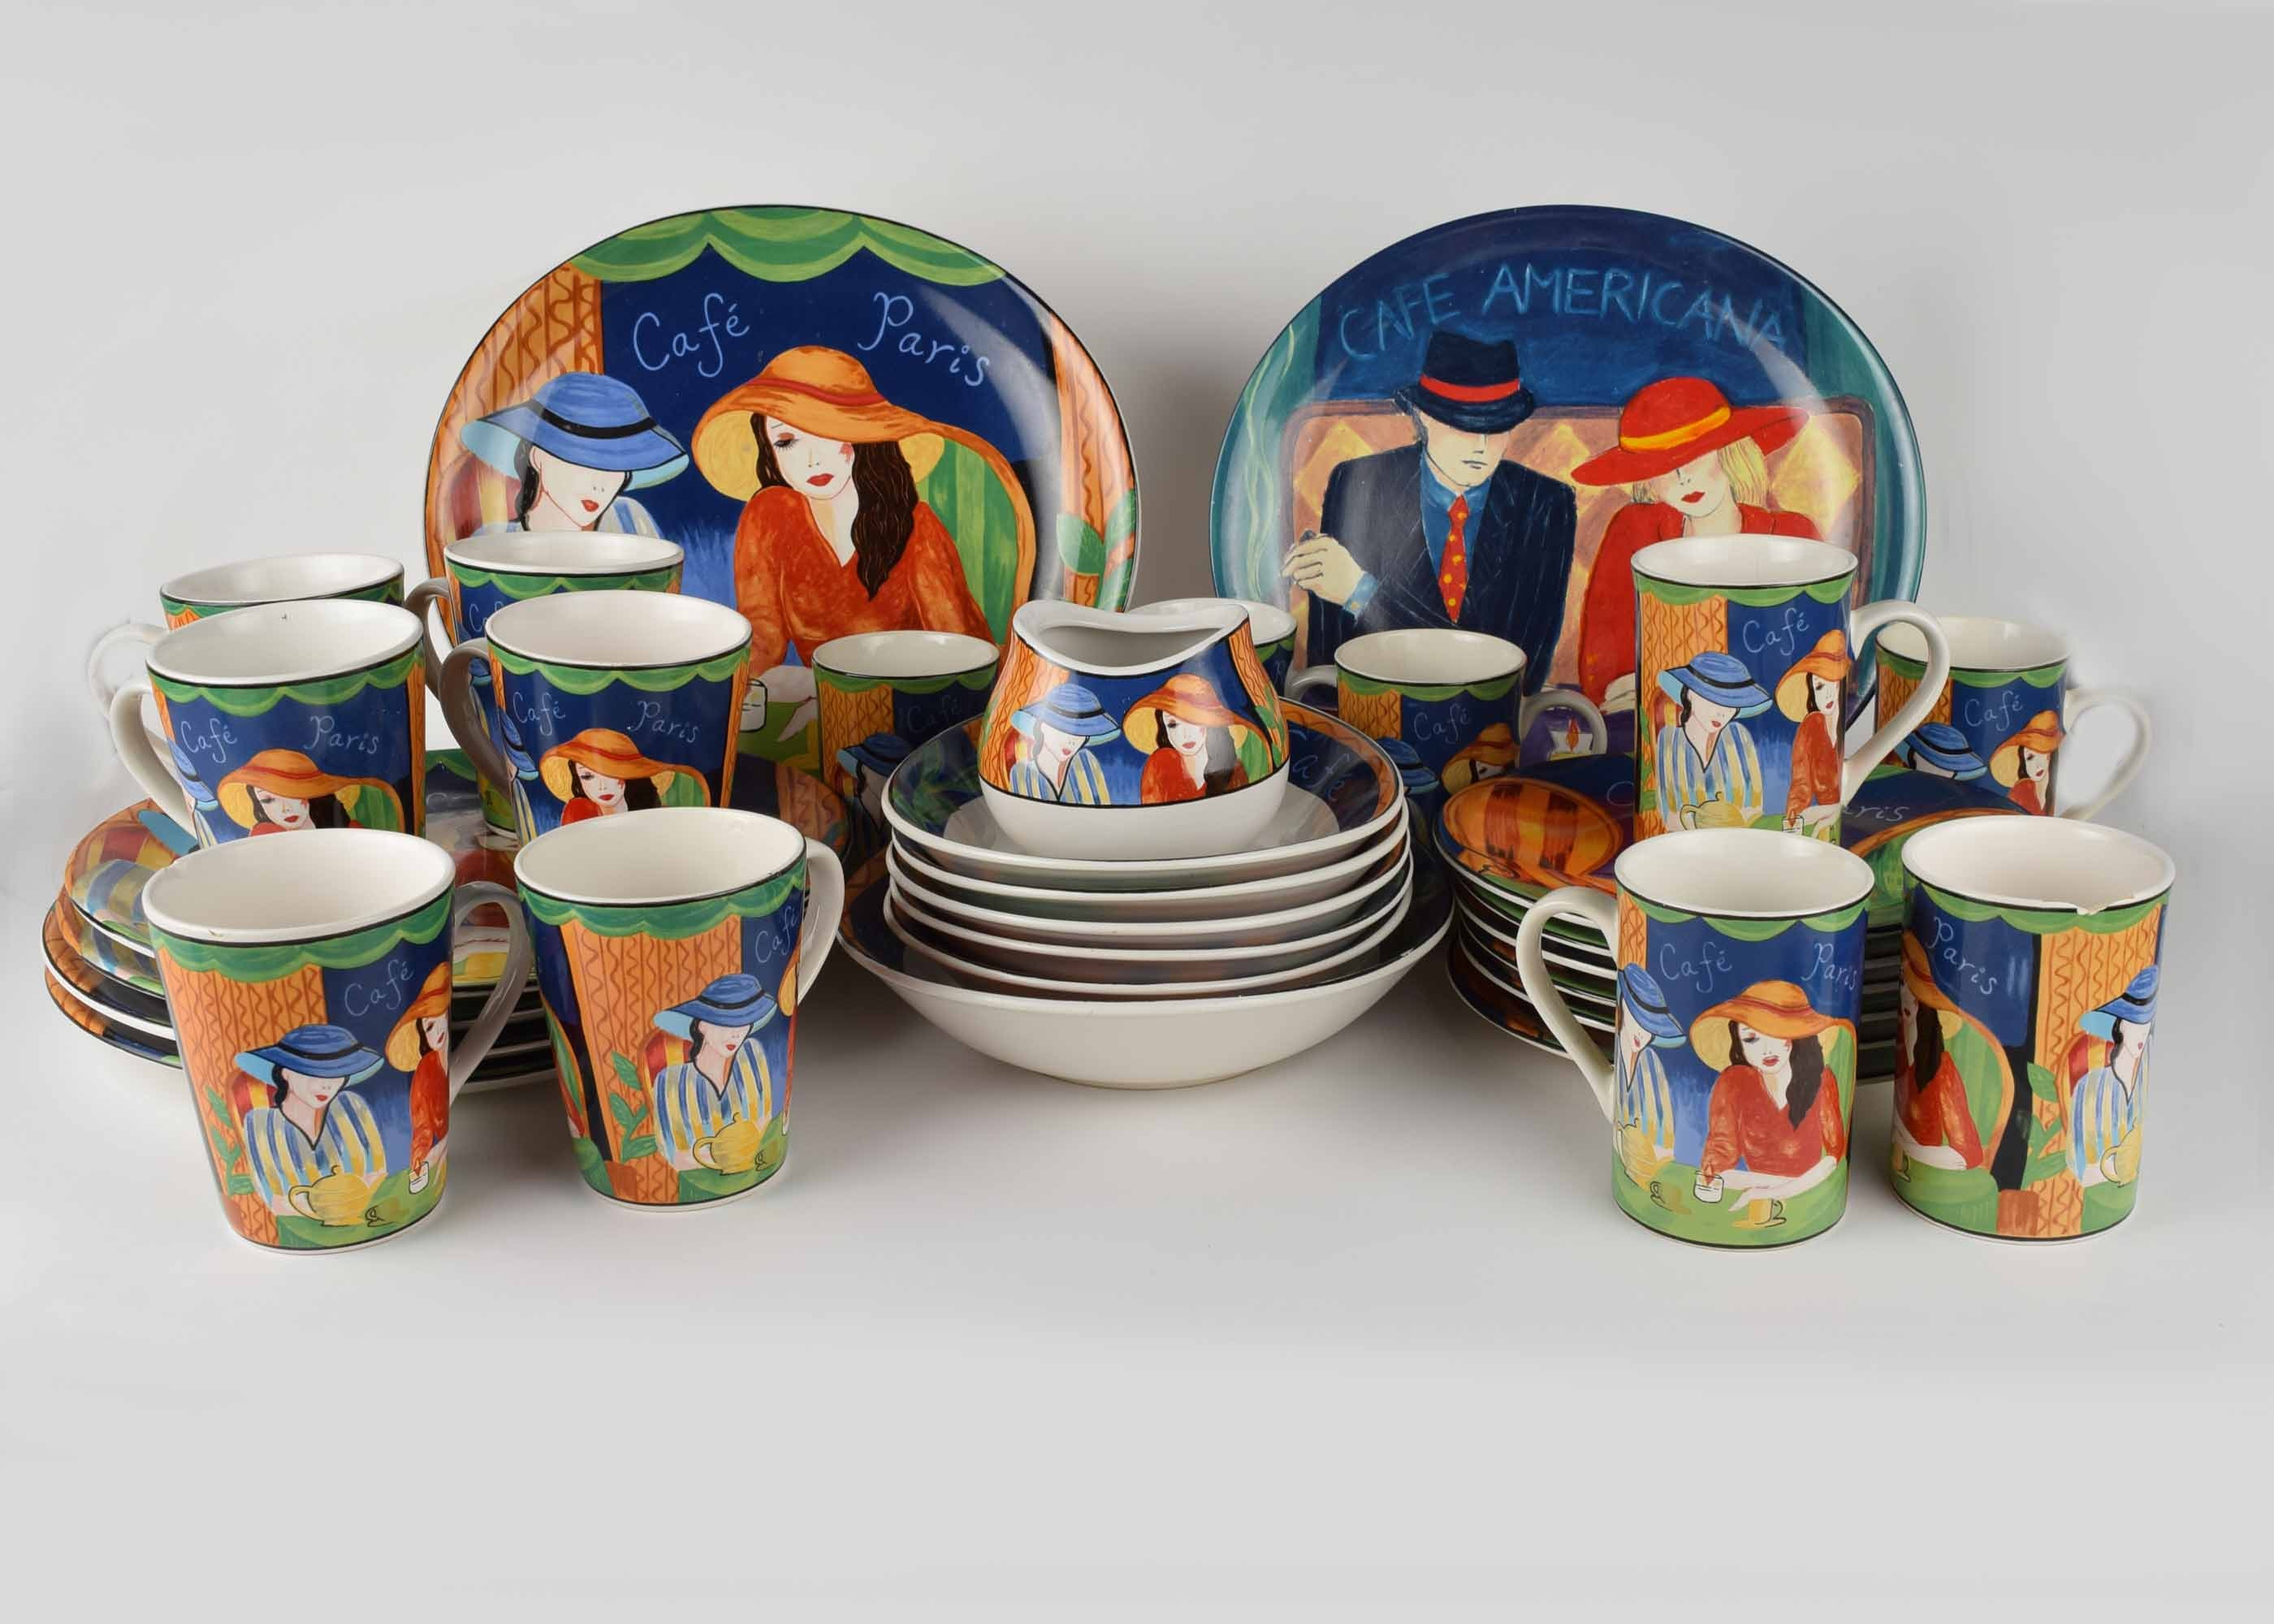 Sango  Cafe Paris  Dinnerware ... : paris plates dinnerware - pezcame.com